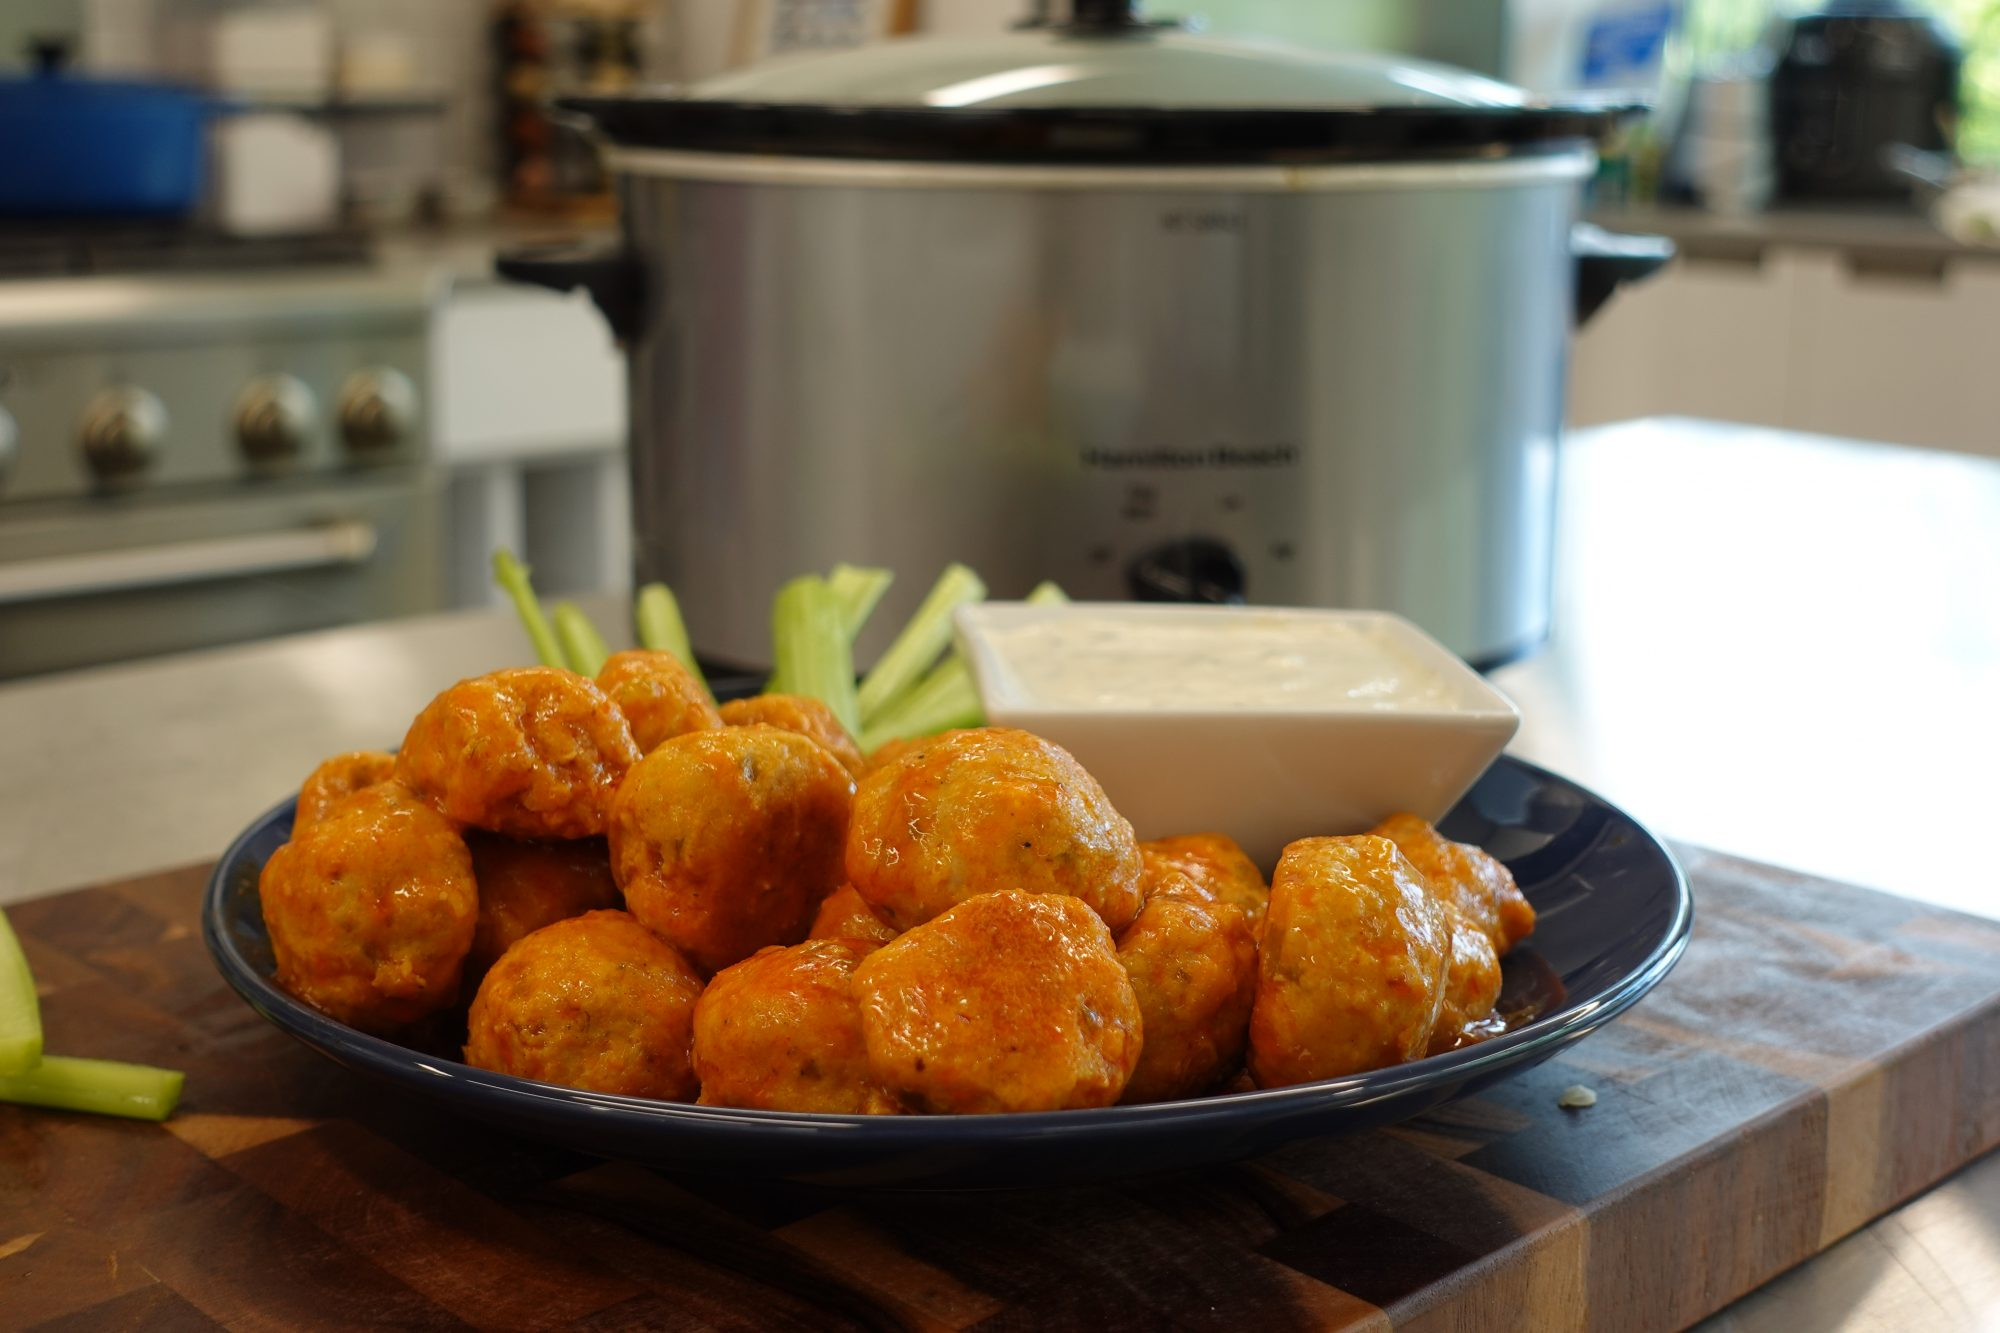 buffalo chicken meatballs in front of silver slow cooker